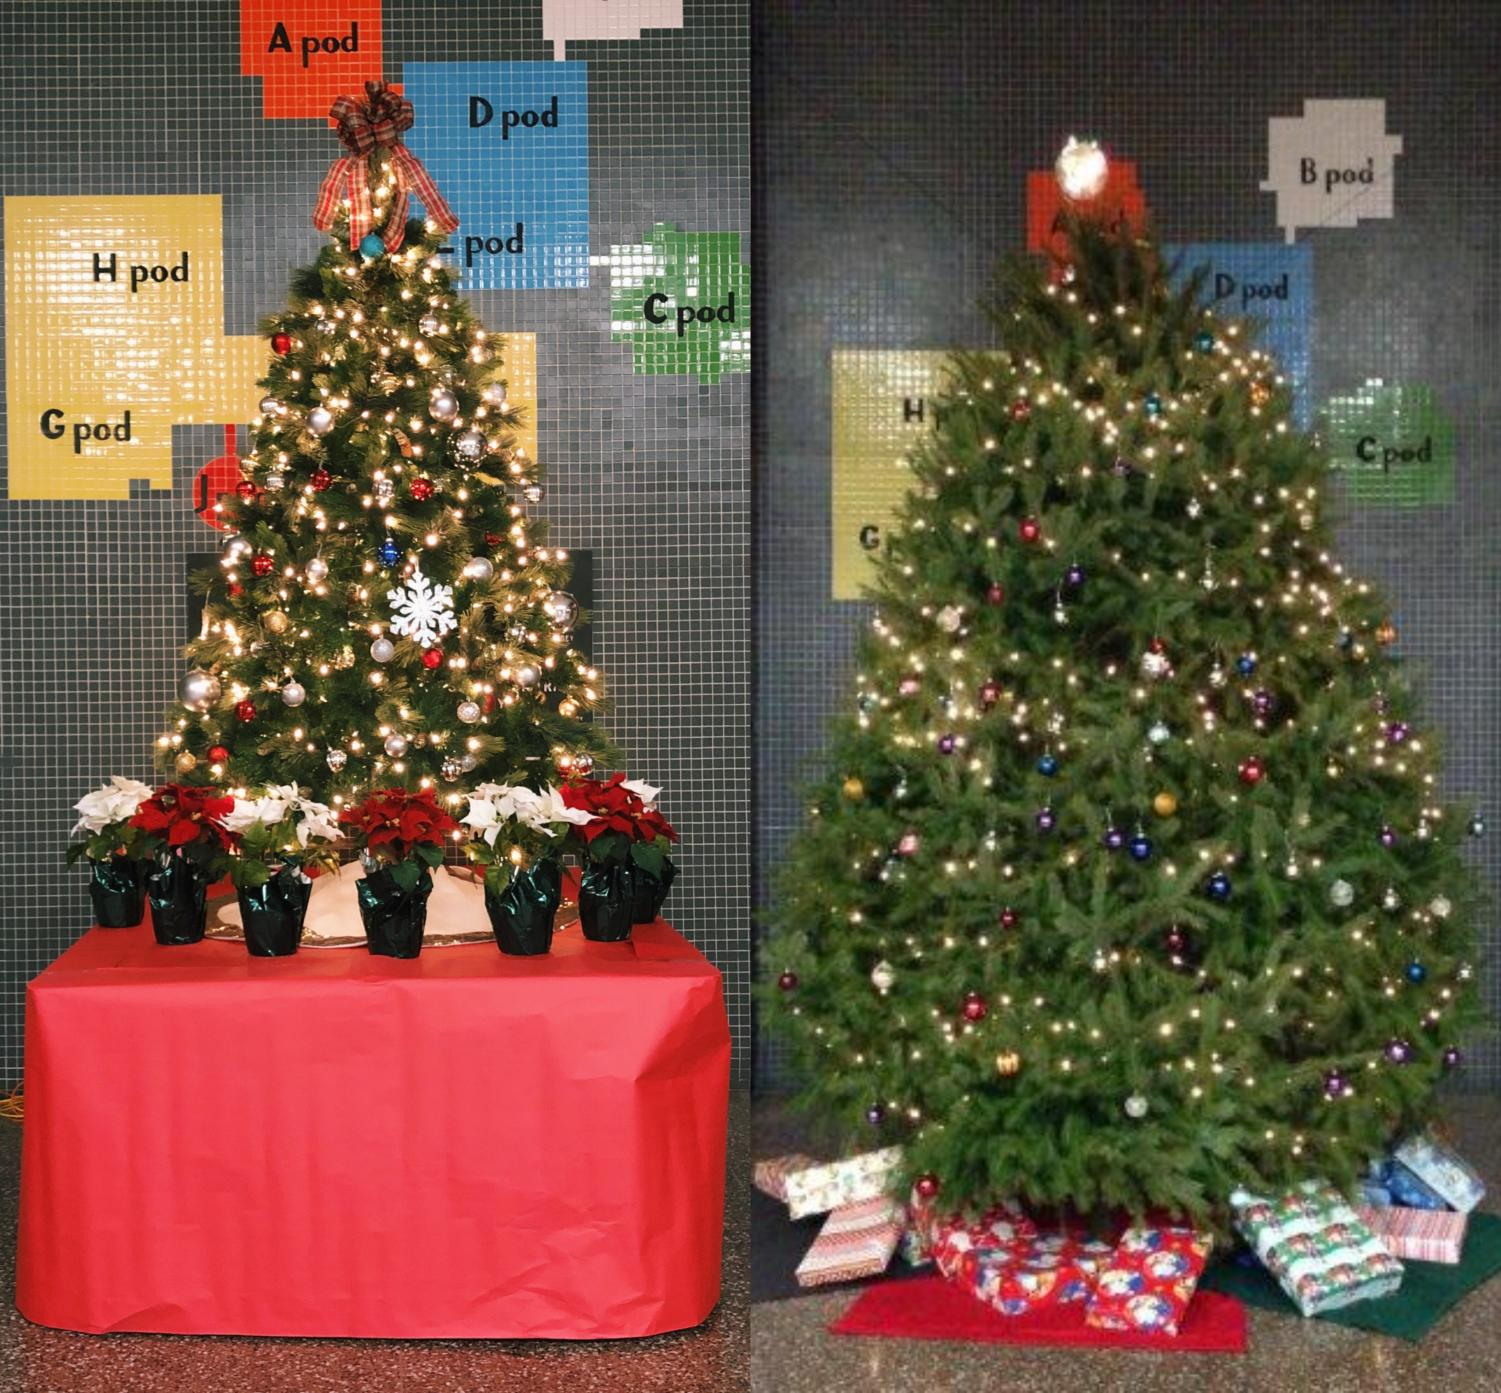 This picture shows a side-by-side comparison of the current Christmas tree in the NPHS lobby (left), and the tree from previous years (right).